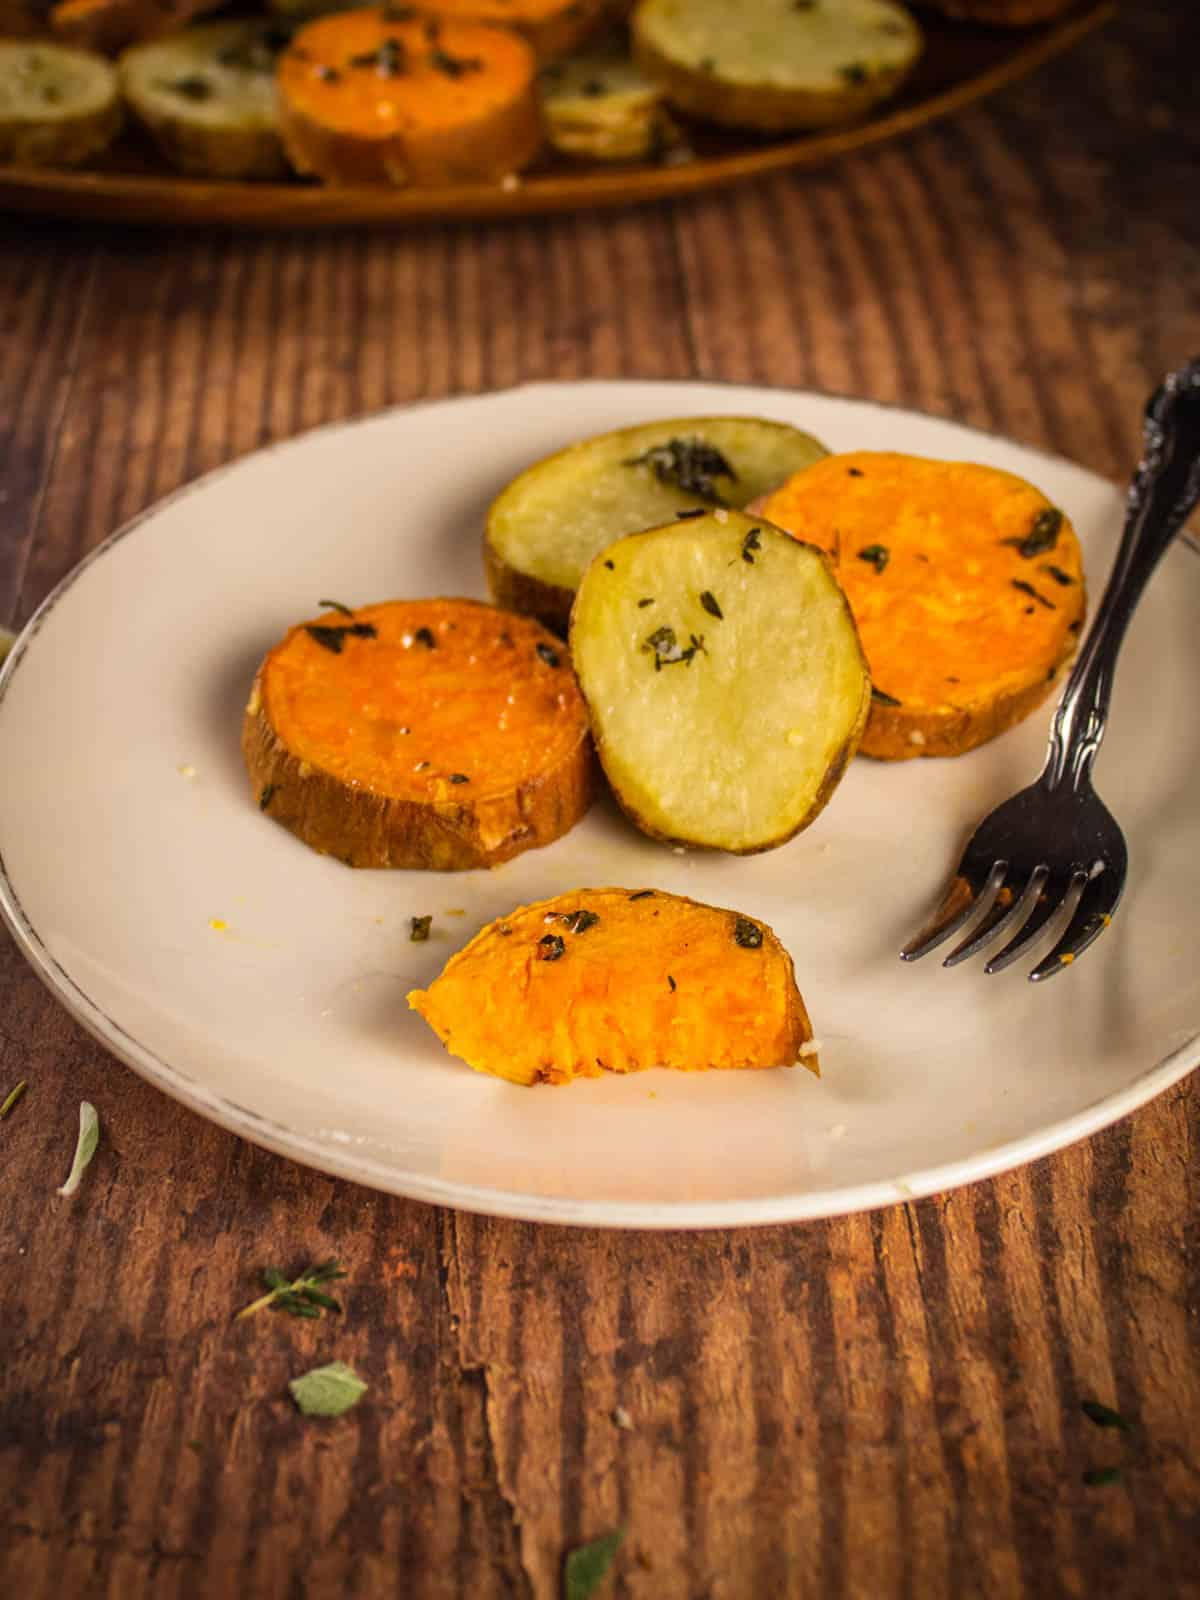 sliced roasted sweet and russet potatoes on a plate